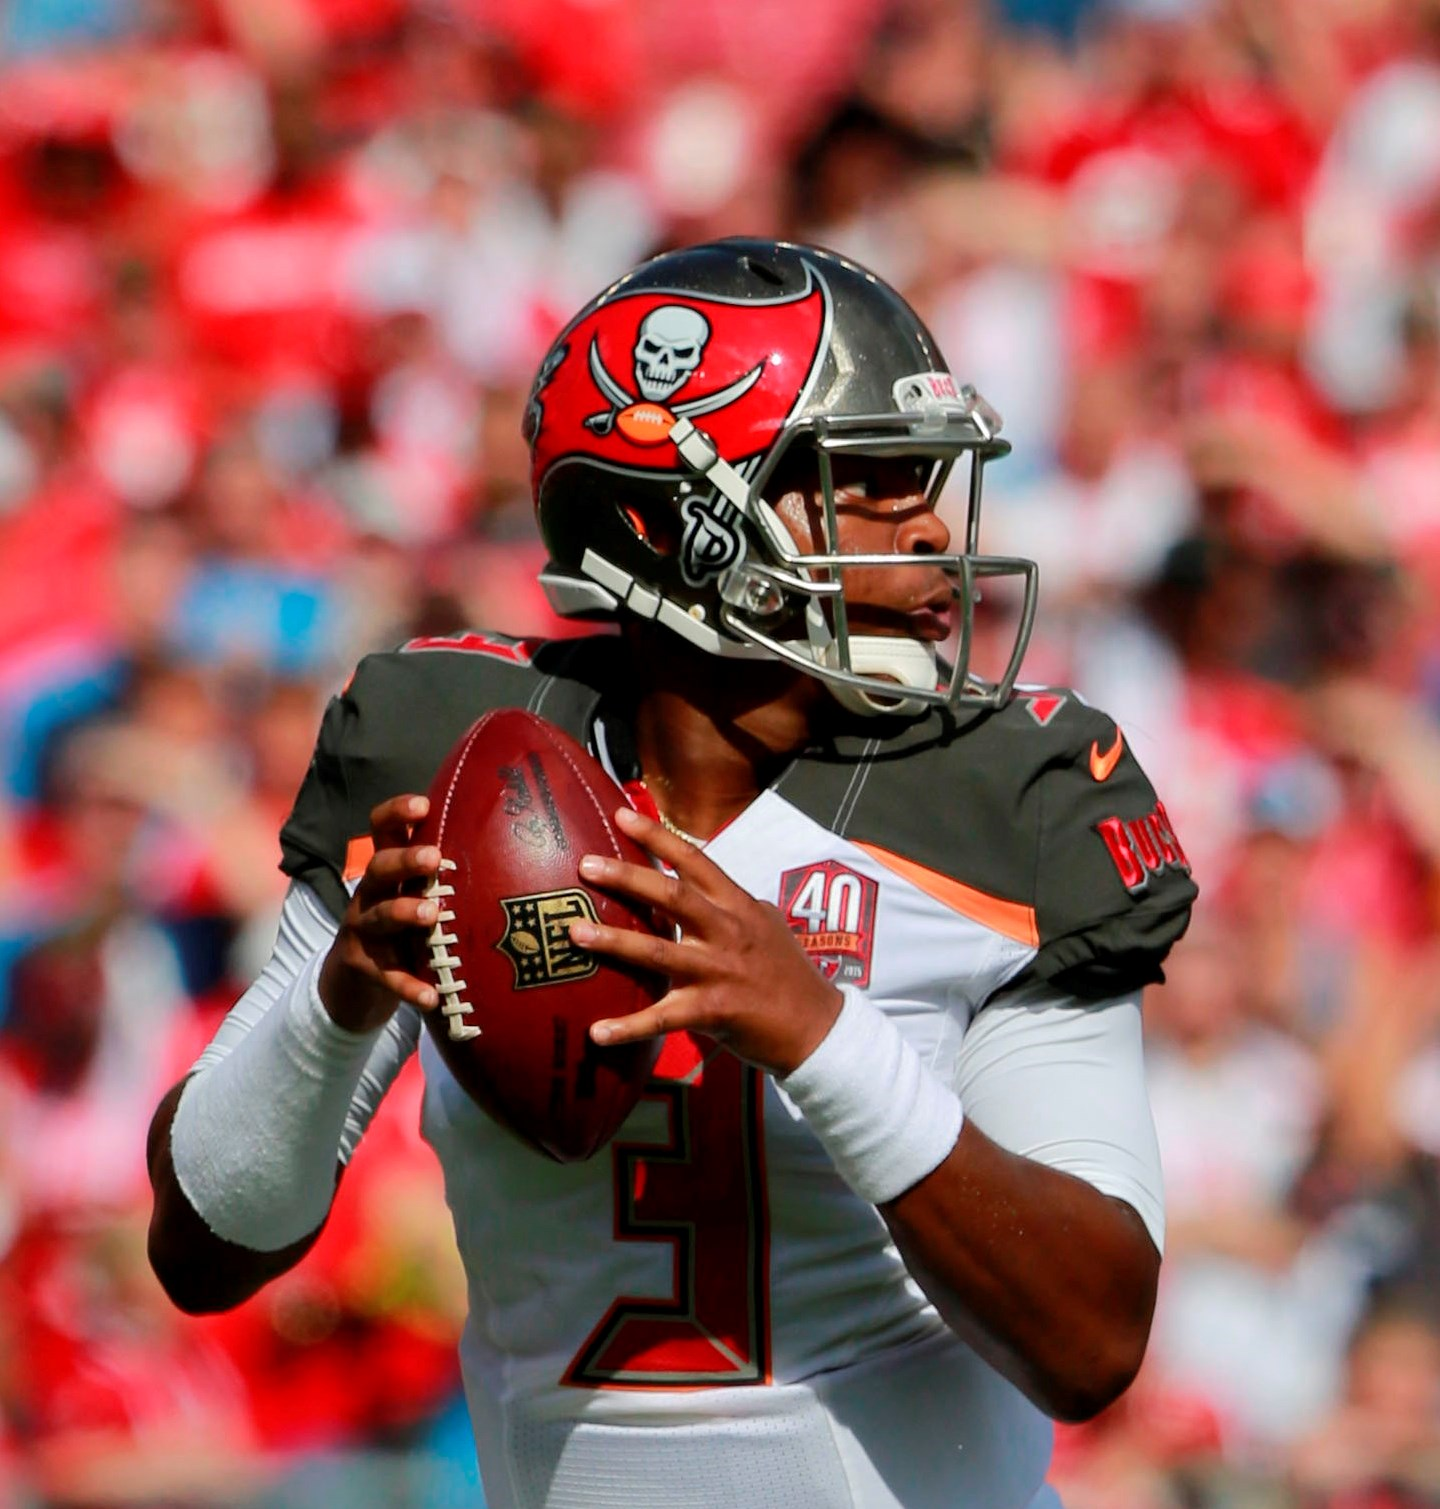 Sep 13, 2015; Tampa, FL, USA; Tampa Bay Buccaneers quarterback Jameis Winston (3) drops back against the Tennessee Titans during the first quarter at Raymond James Stadium. Mandatory Credit: Kim Klement-USA TODAY Sports